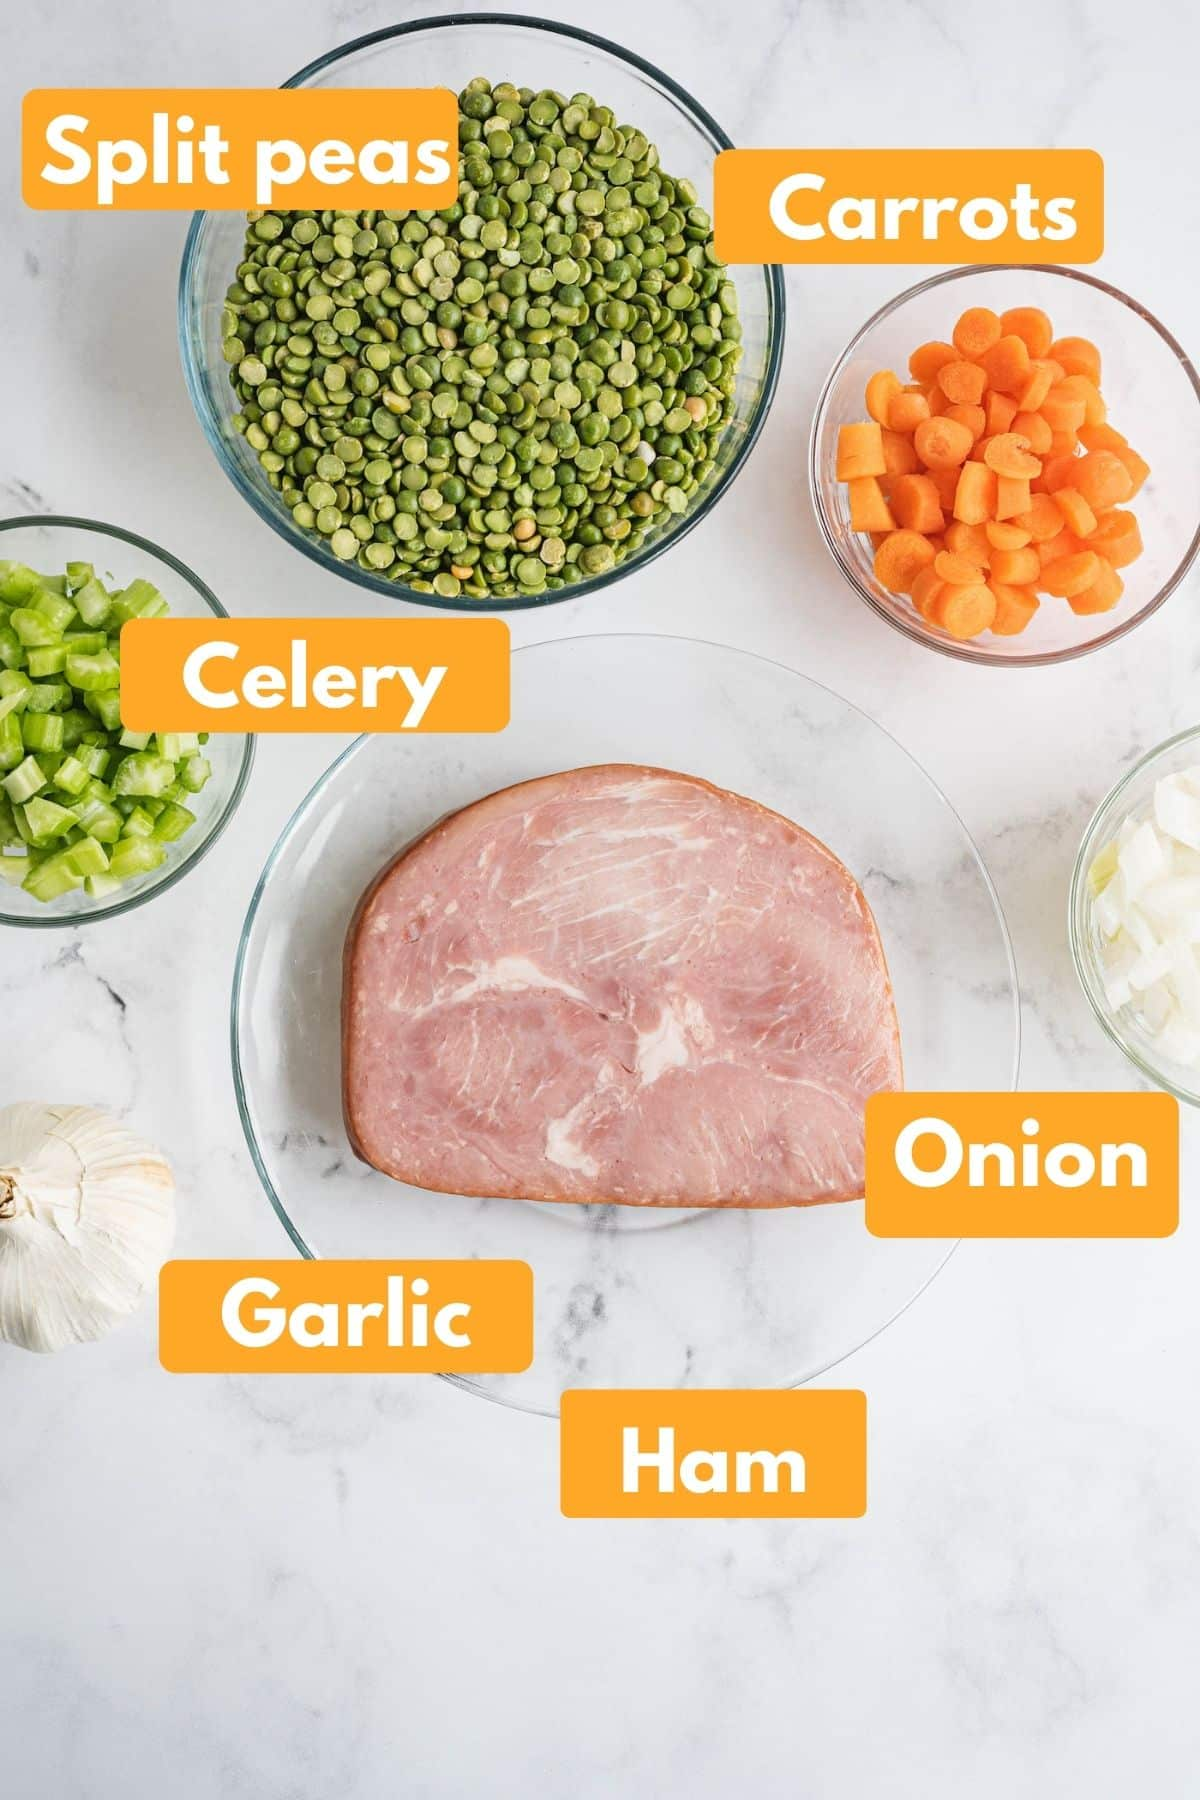 photo with ingredients for split pea soup with labels